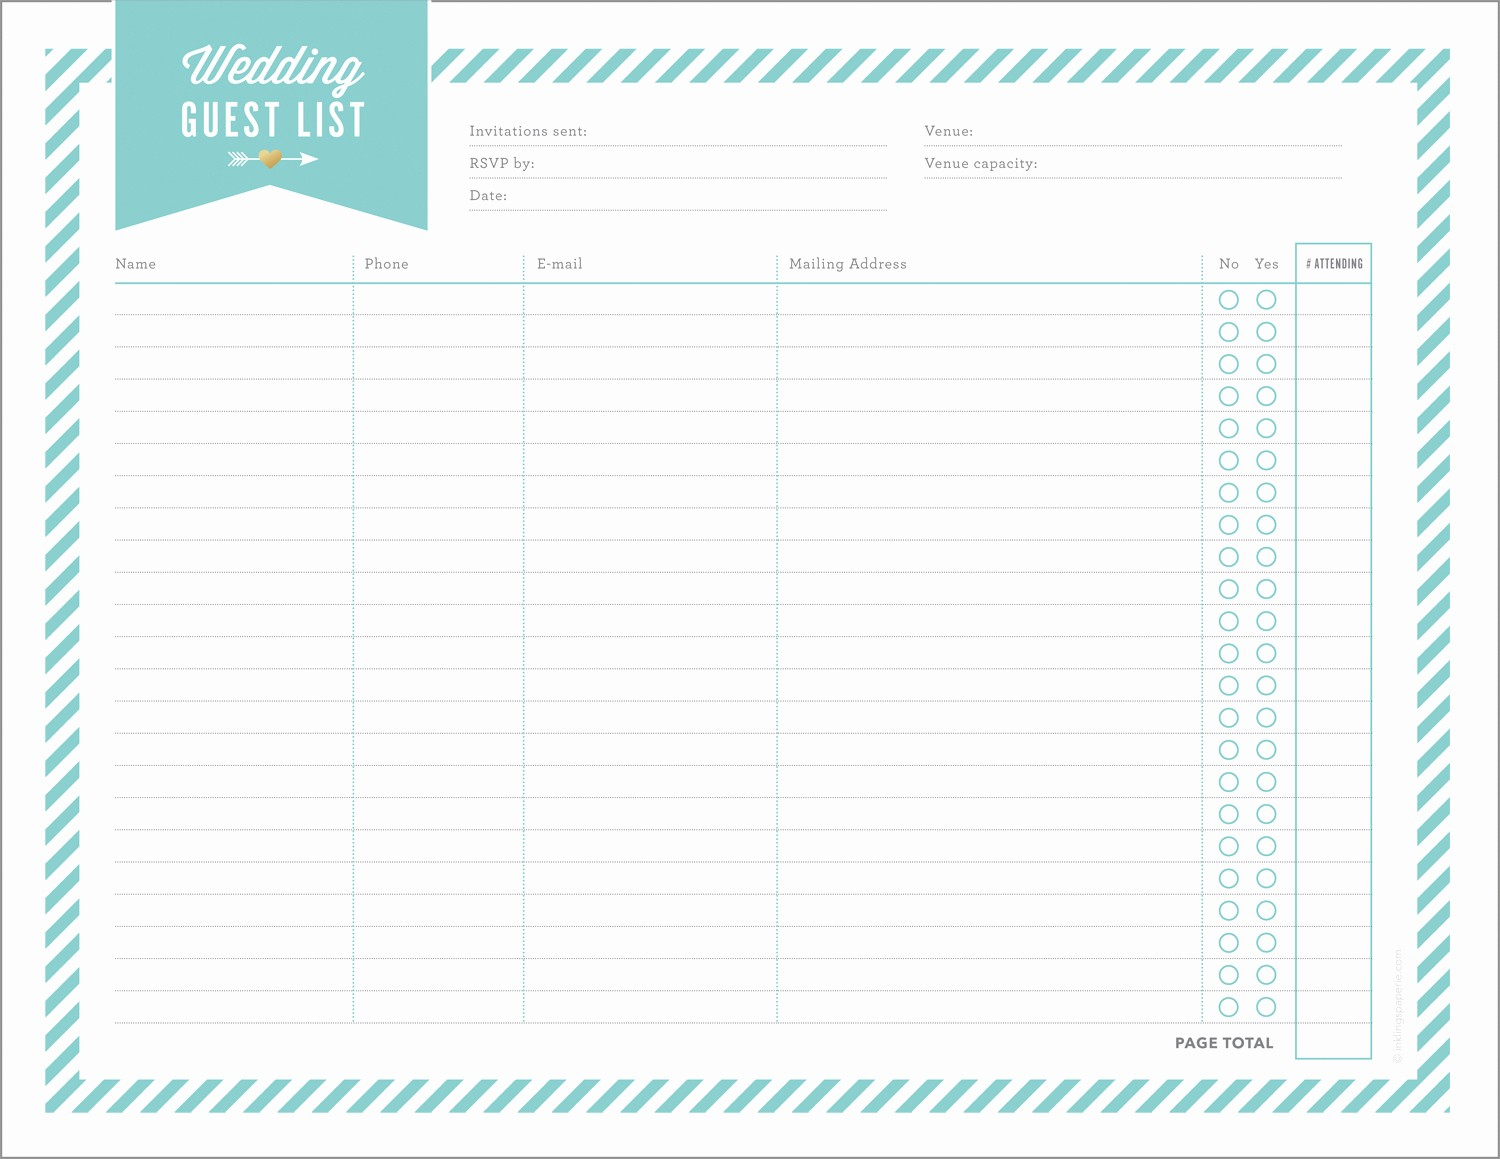 Wedding Guest List Print Out Lovely Free Wedding Planning Printables & Checklists